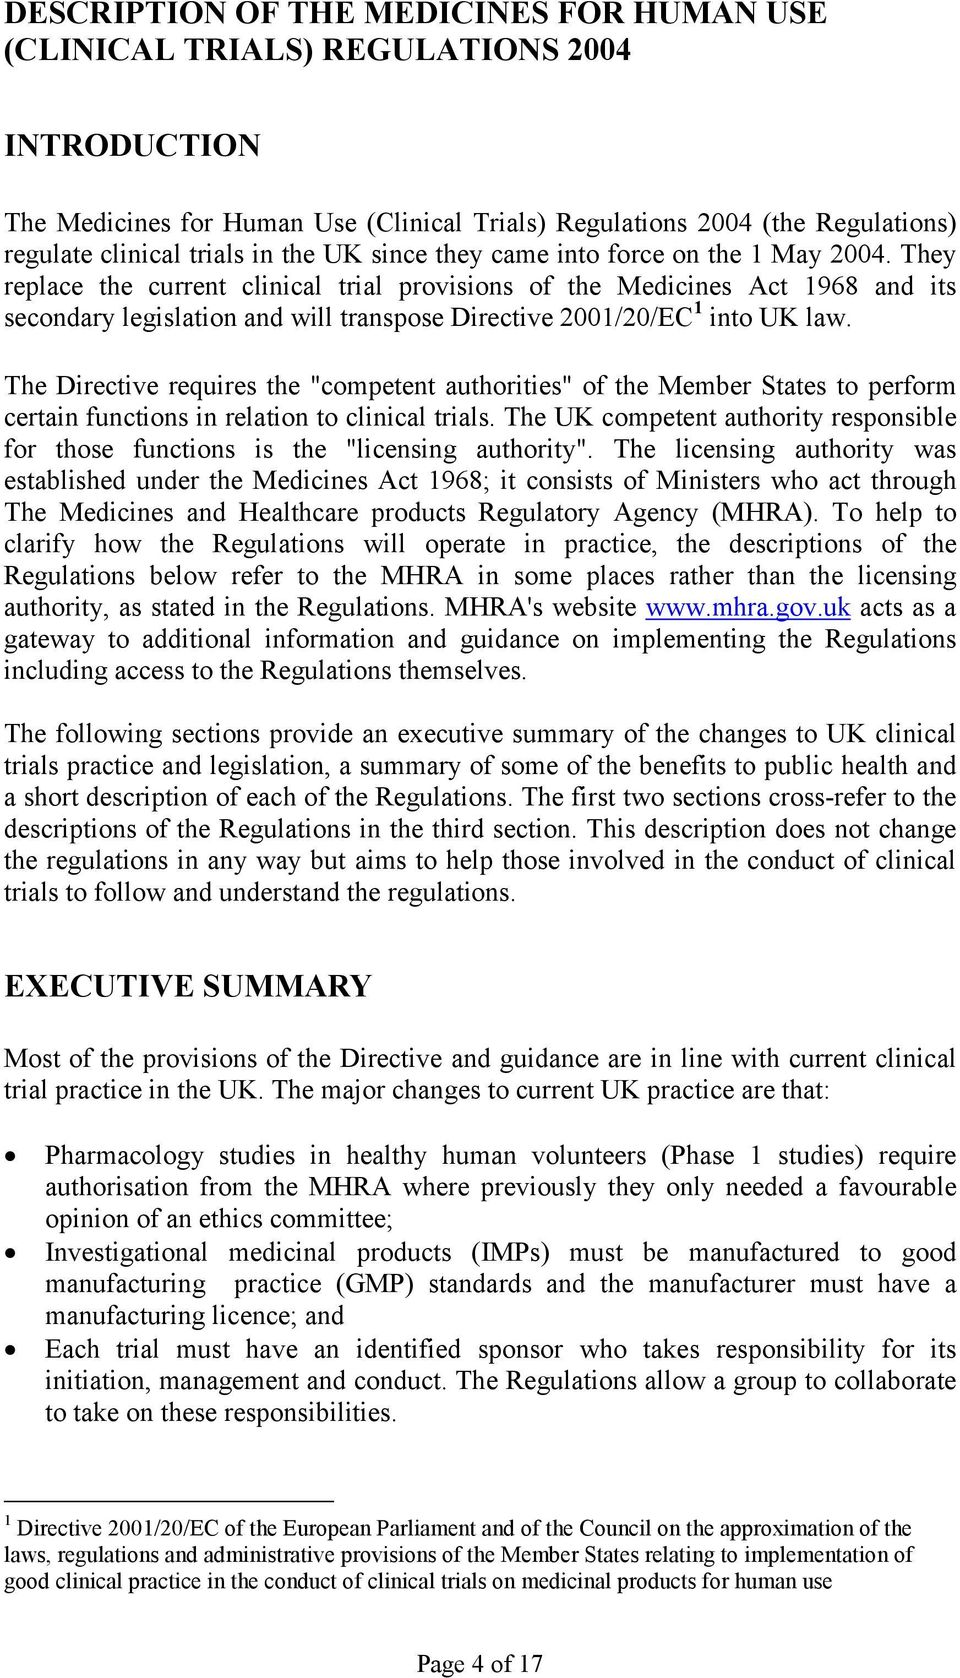 They replace the current clinical trial provisions of the Medicines Act 1968 and its secondary legislation and will transpose Directive 2001/20/EC 1 into UK law.